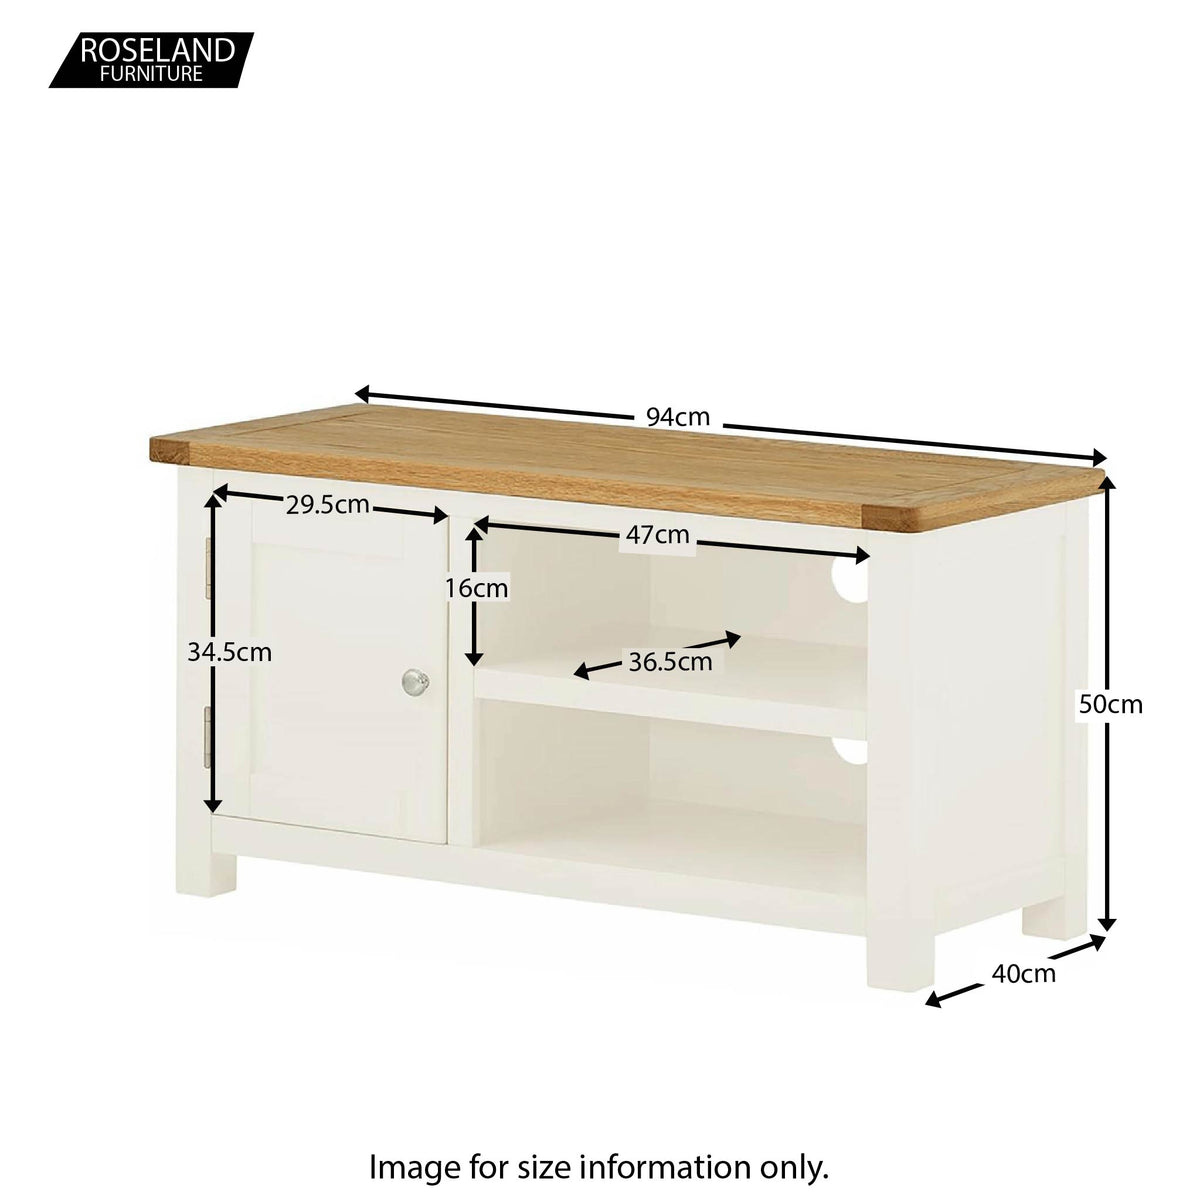 Padstow White 94cm TV Stand - Size Guide